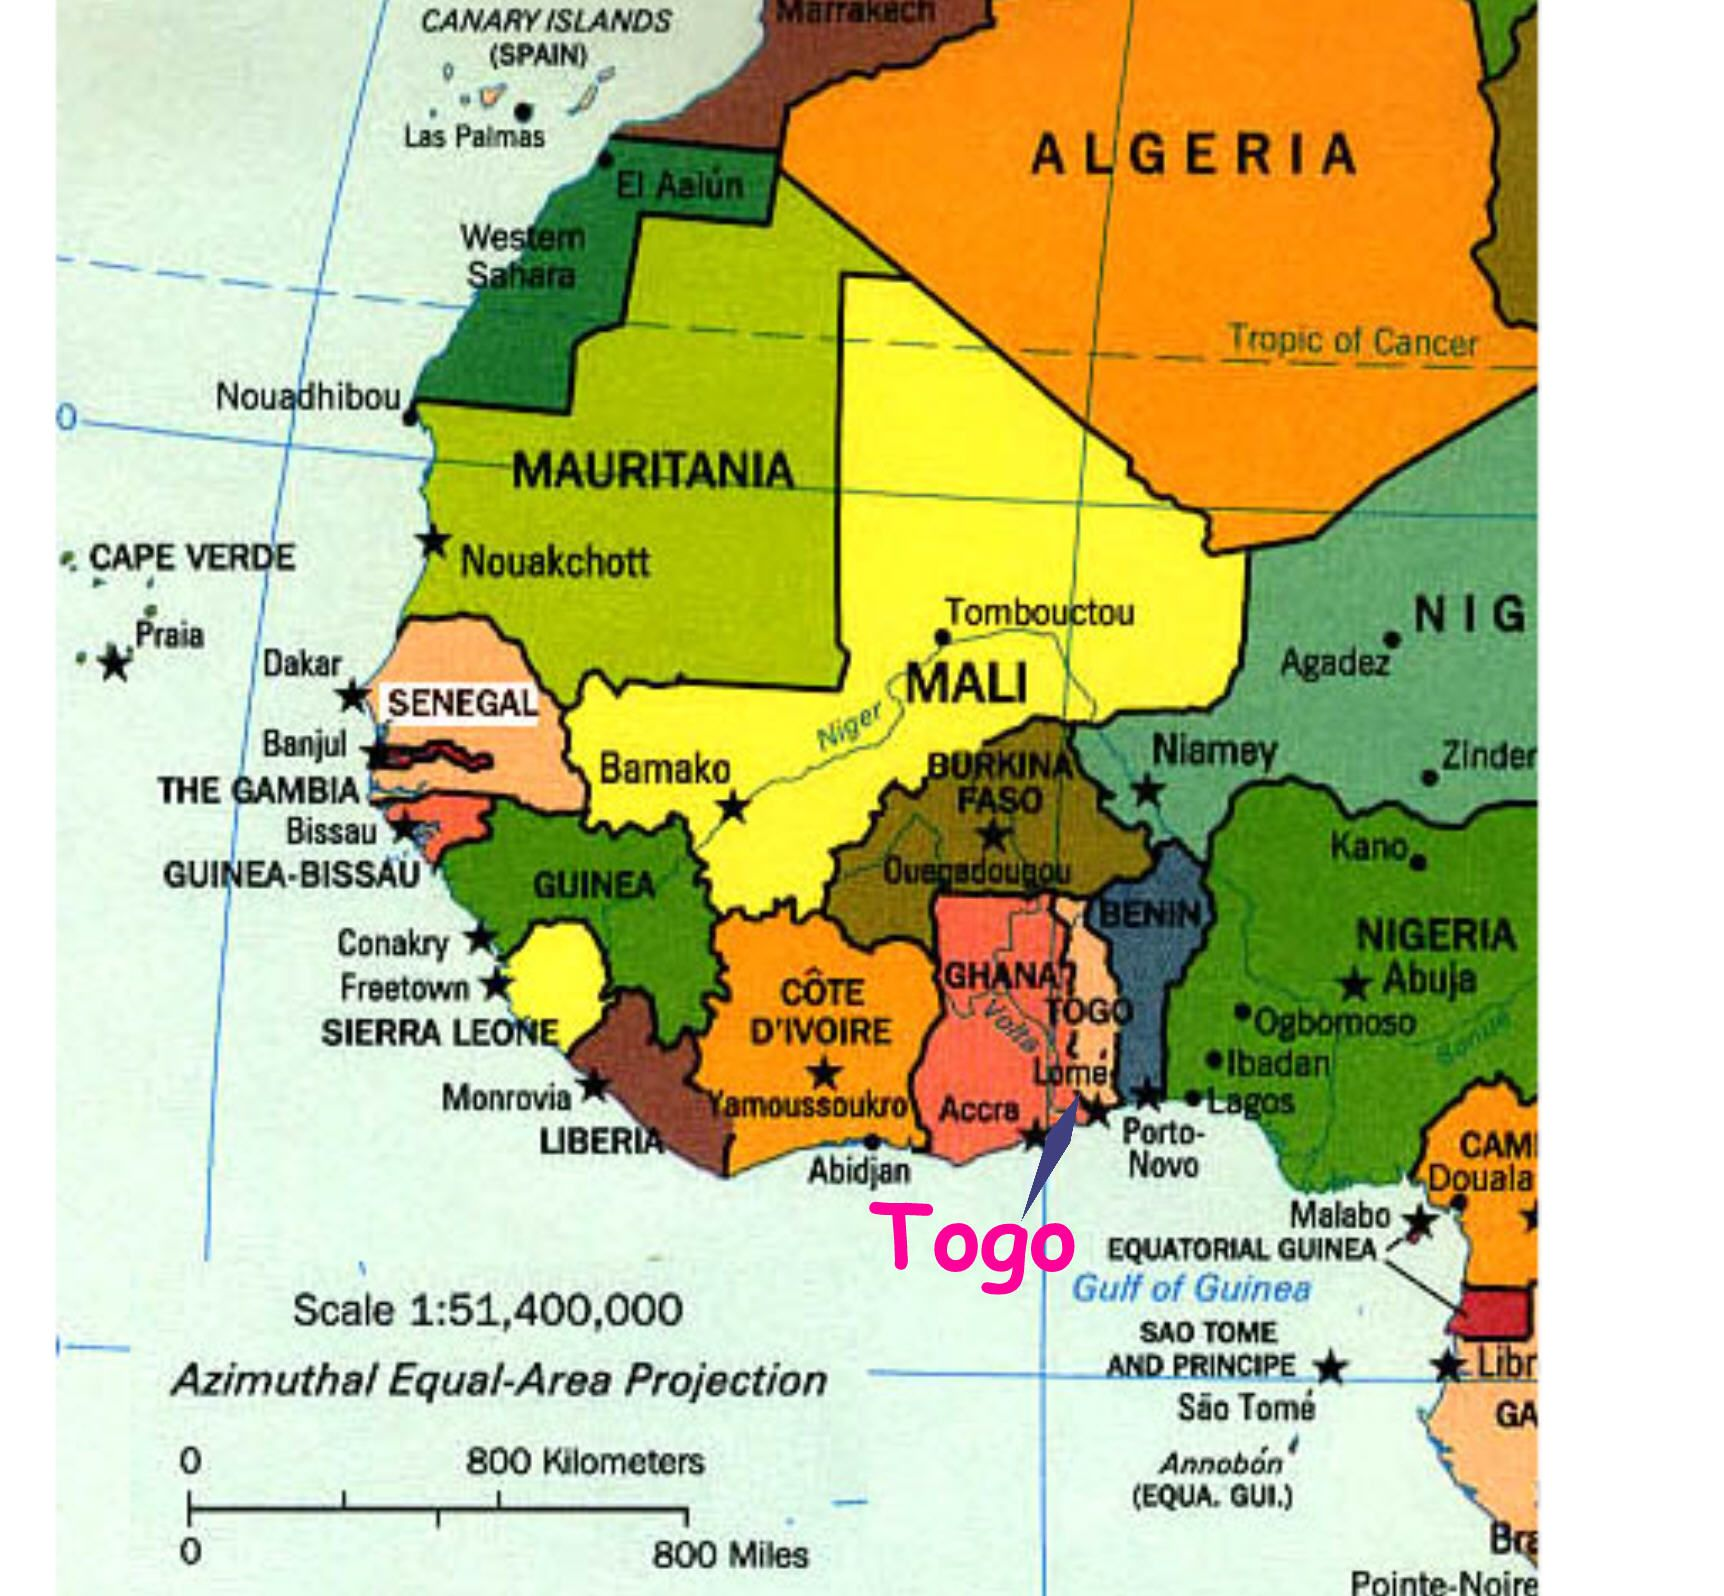 lome togo west africa | JSC is in Lome, Togo West Africa. | SUSAN